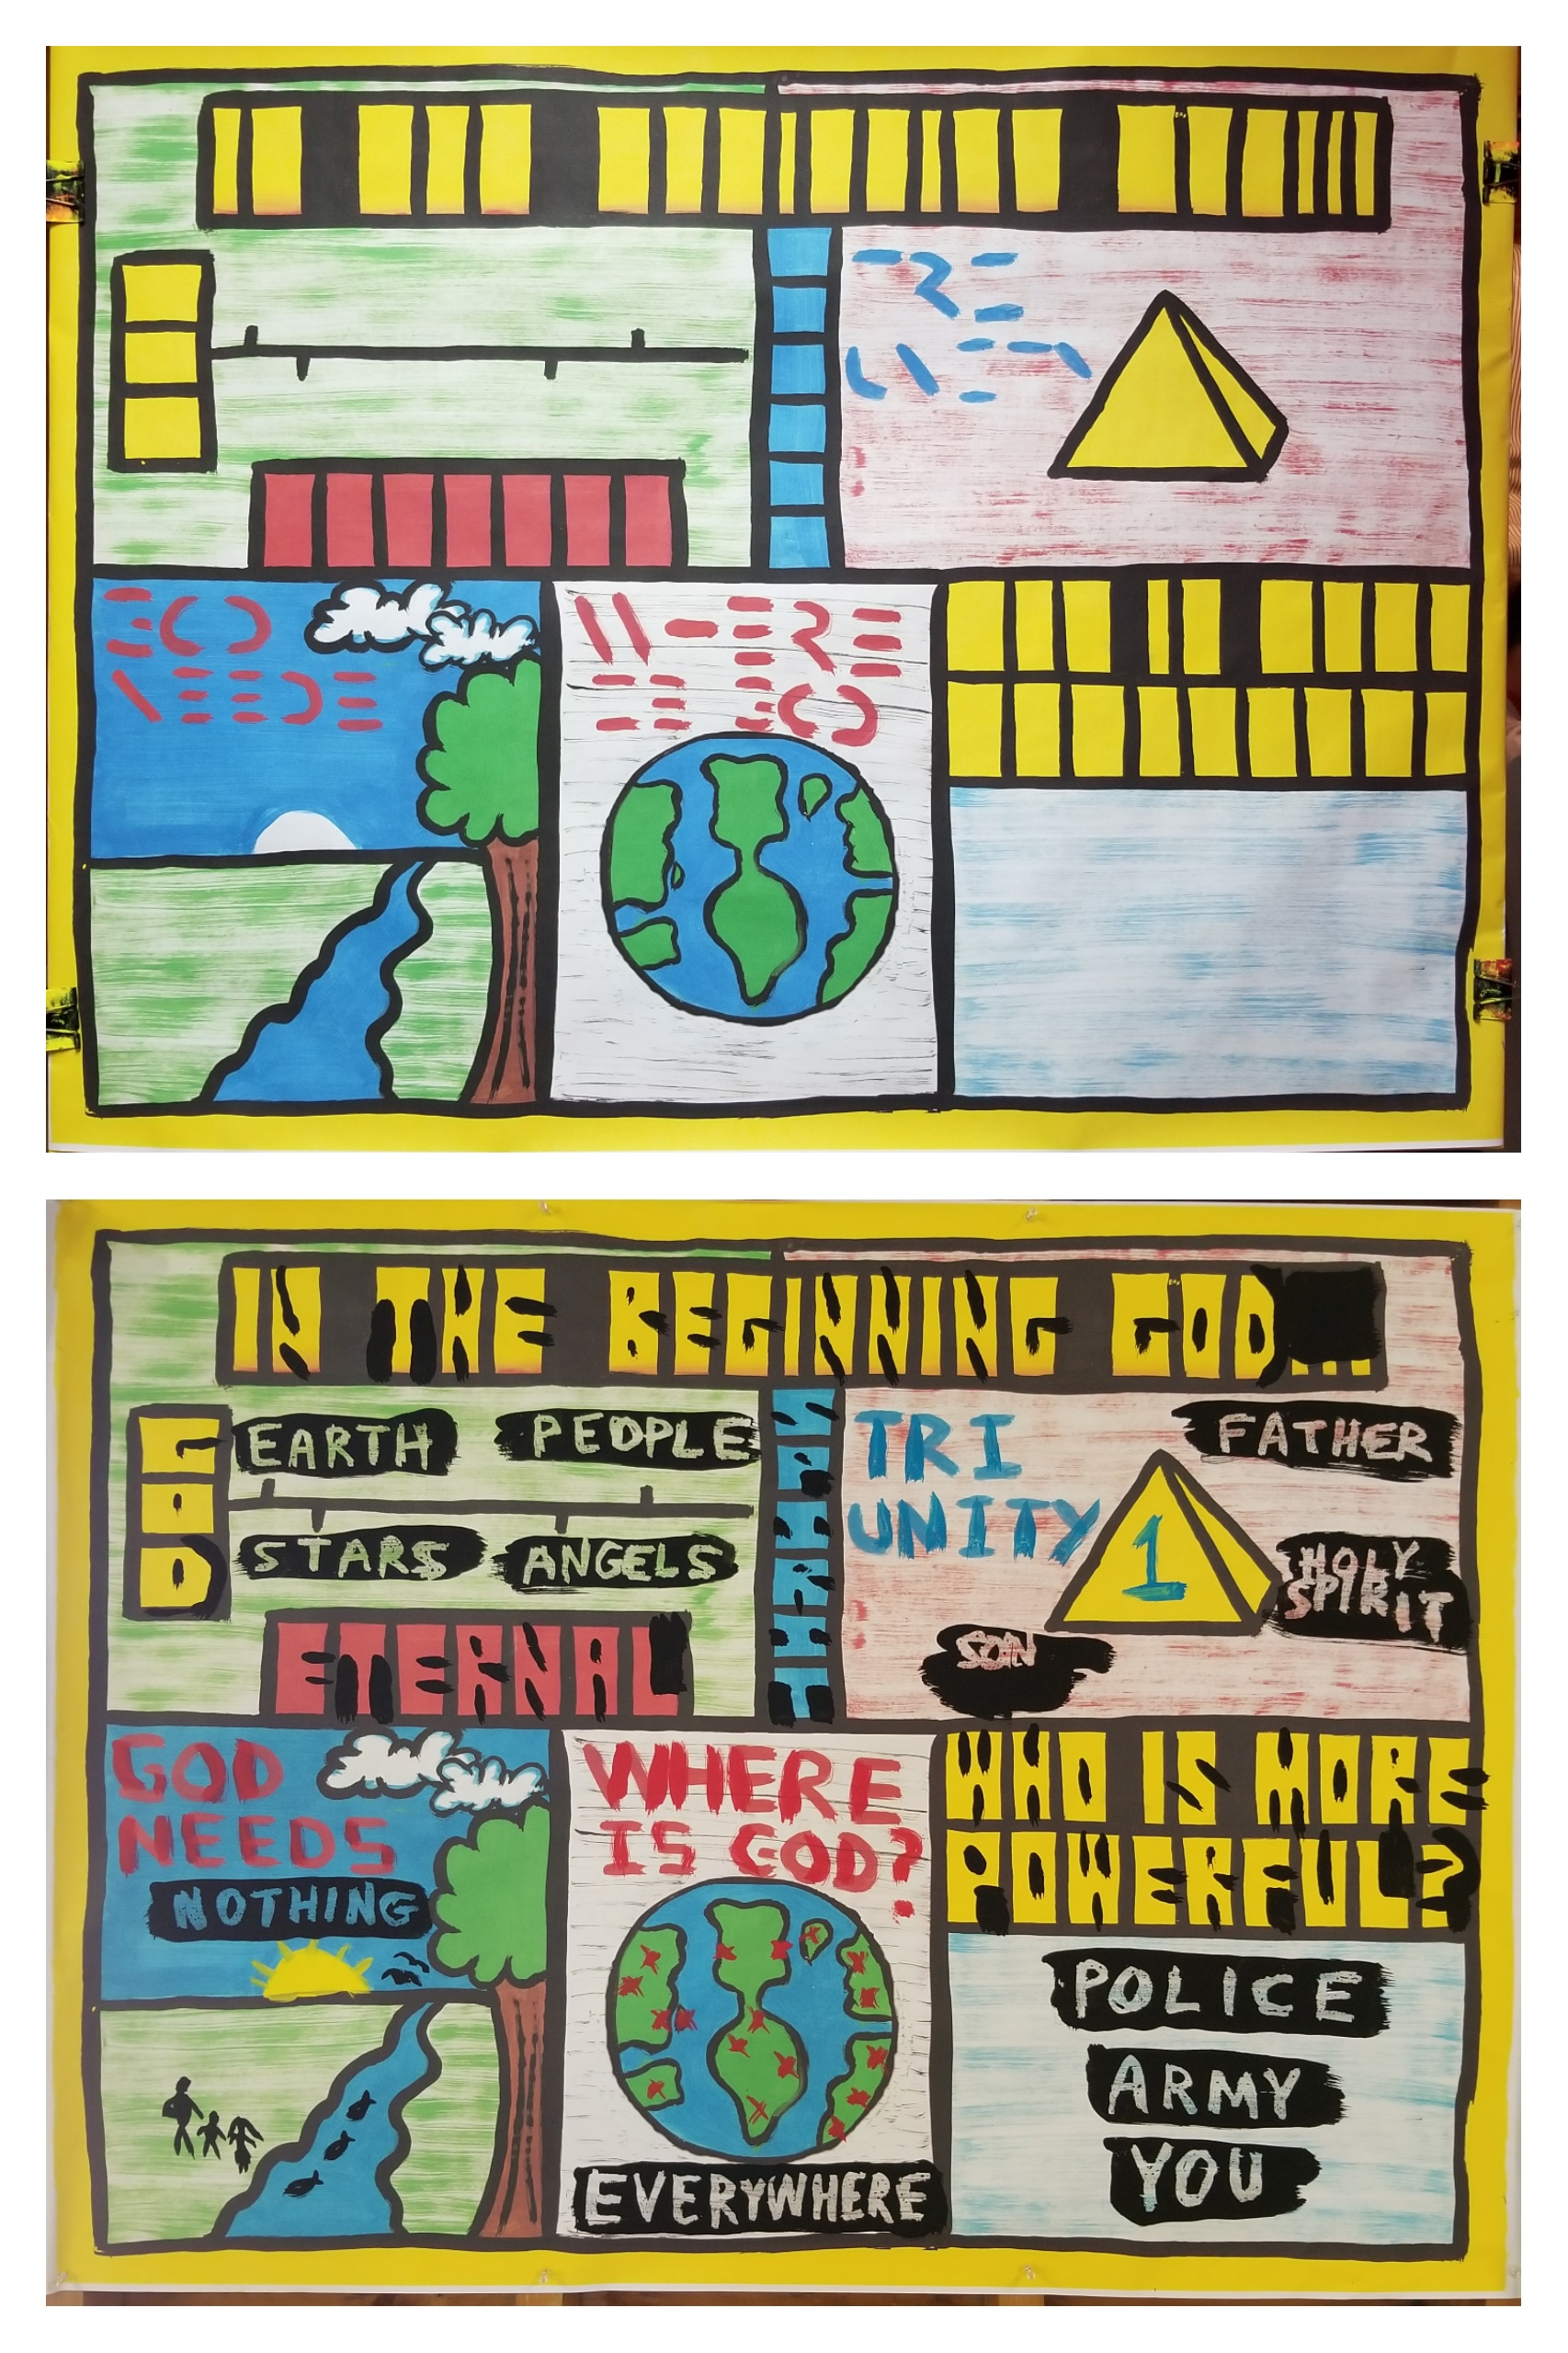 This is part 1 in a 5-day series on 'The Gospel in Creation.' I believe kids are smart and can understand Theology when explained to them. So we learned God is 'Eternal,' meaning He always existed and always will. We learned that God does not have a body of flesh and bones, but is a Spirit. We learned that there is only 1 True God, and He exists in Three Persons: The Father, The Son, and The Holy Spirit. We learned that God does not need anything. He is self-sufficient. We learned that God is omni-present (everywhere at all times), and that God is more powerful that everything! Great Theology there, and the kids really 'got it.'